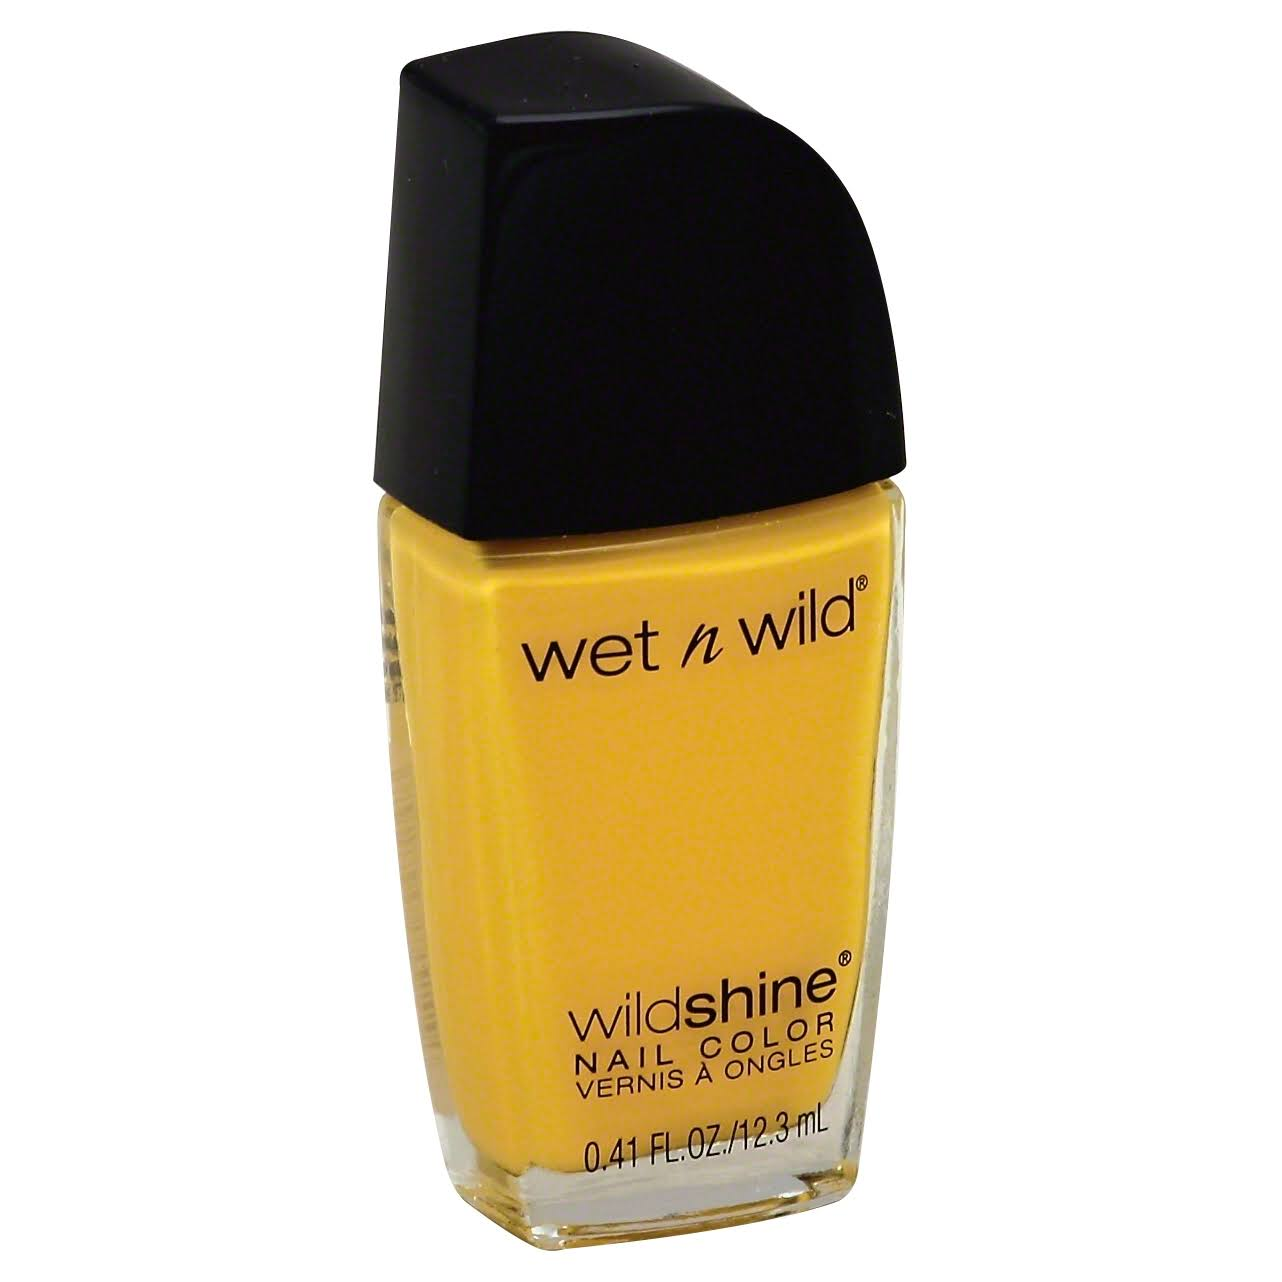 Wet N Wild Shine Nail Color - 472D Doh, 0.41oz